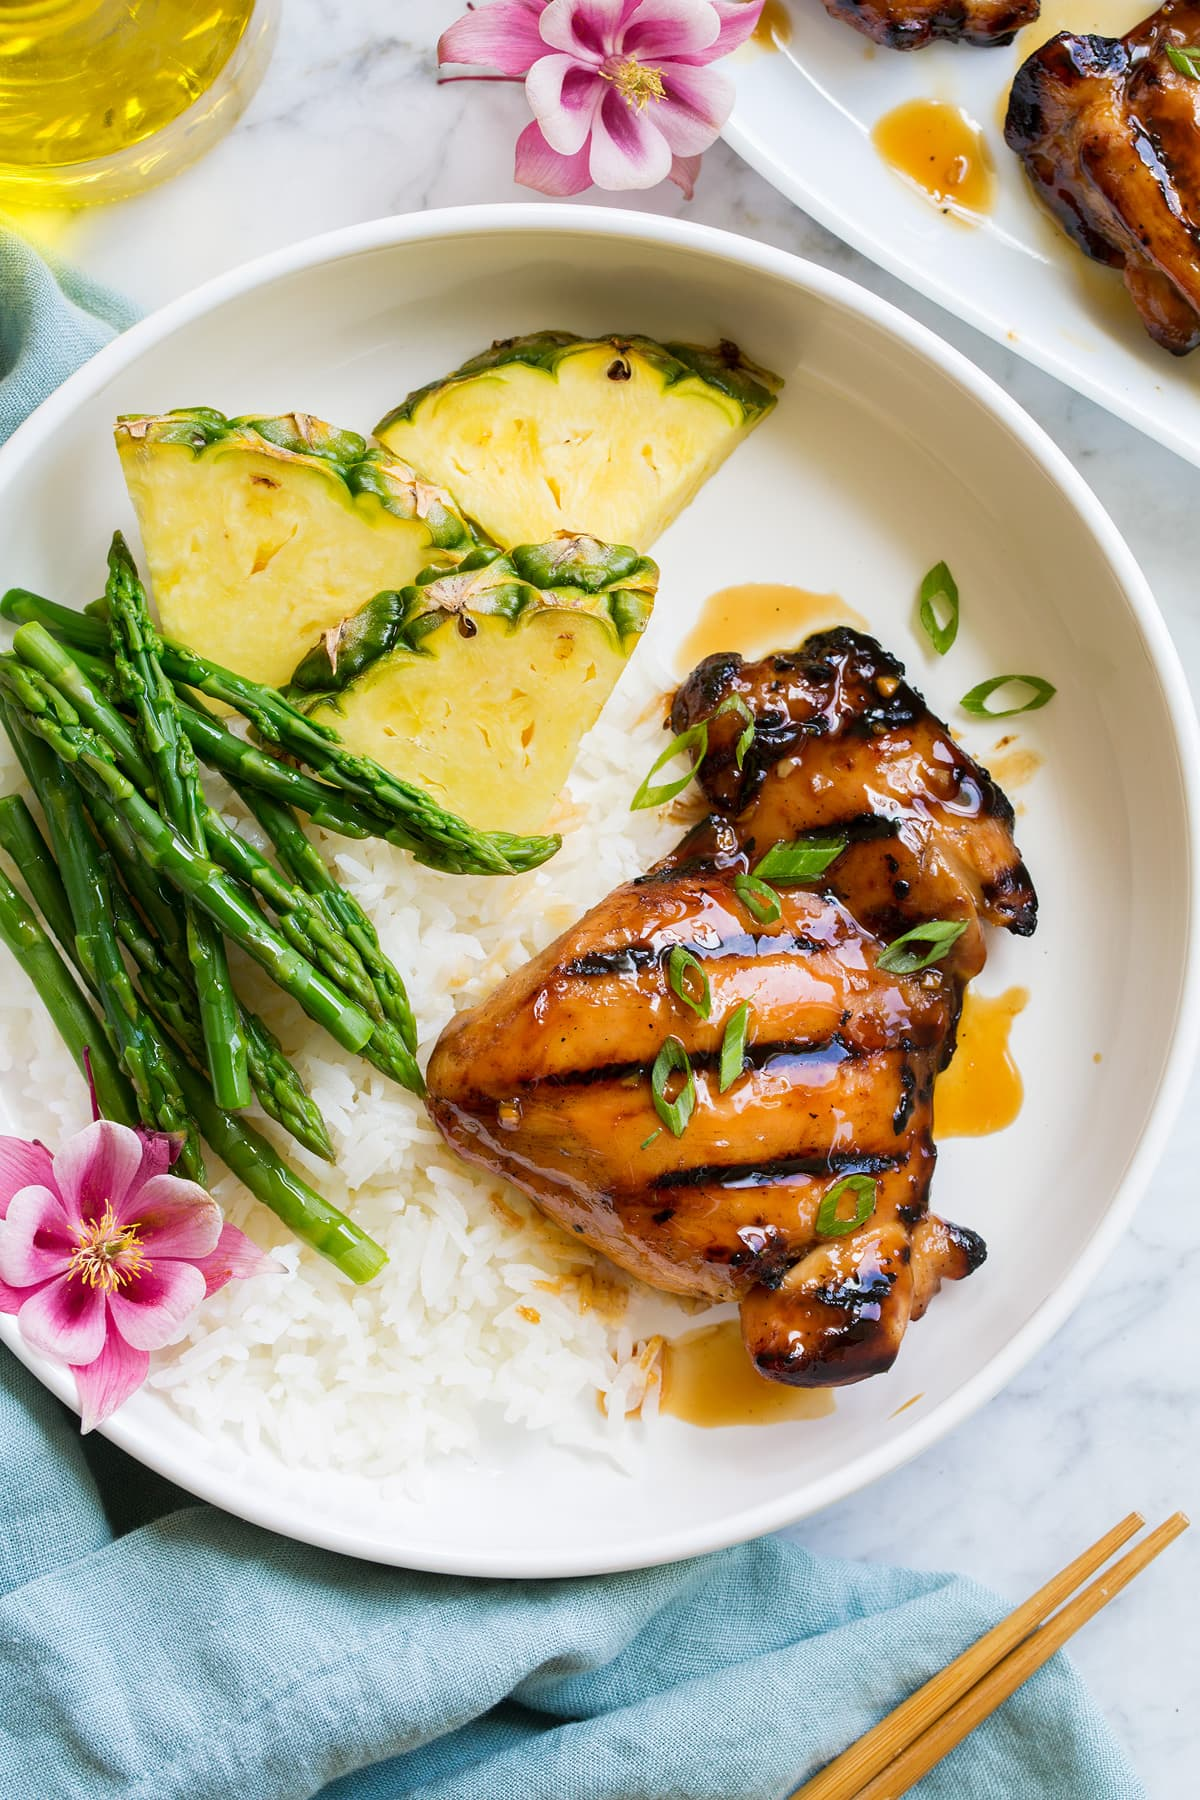 Piece of marinated and grilled teriyaki chicken shown served with rice, asparagus and fresh pineapple.